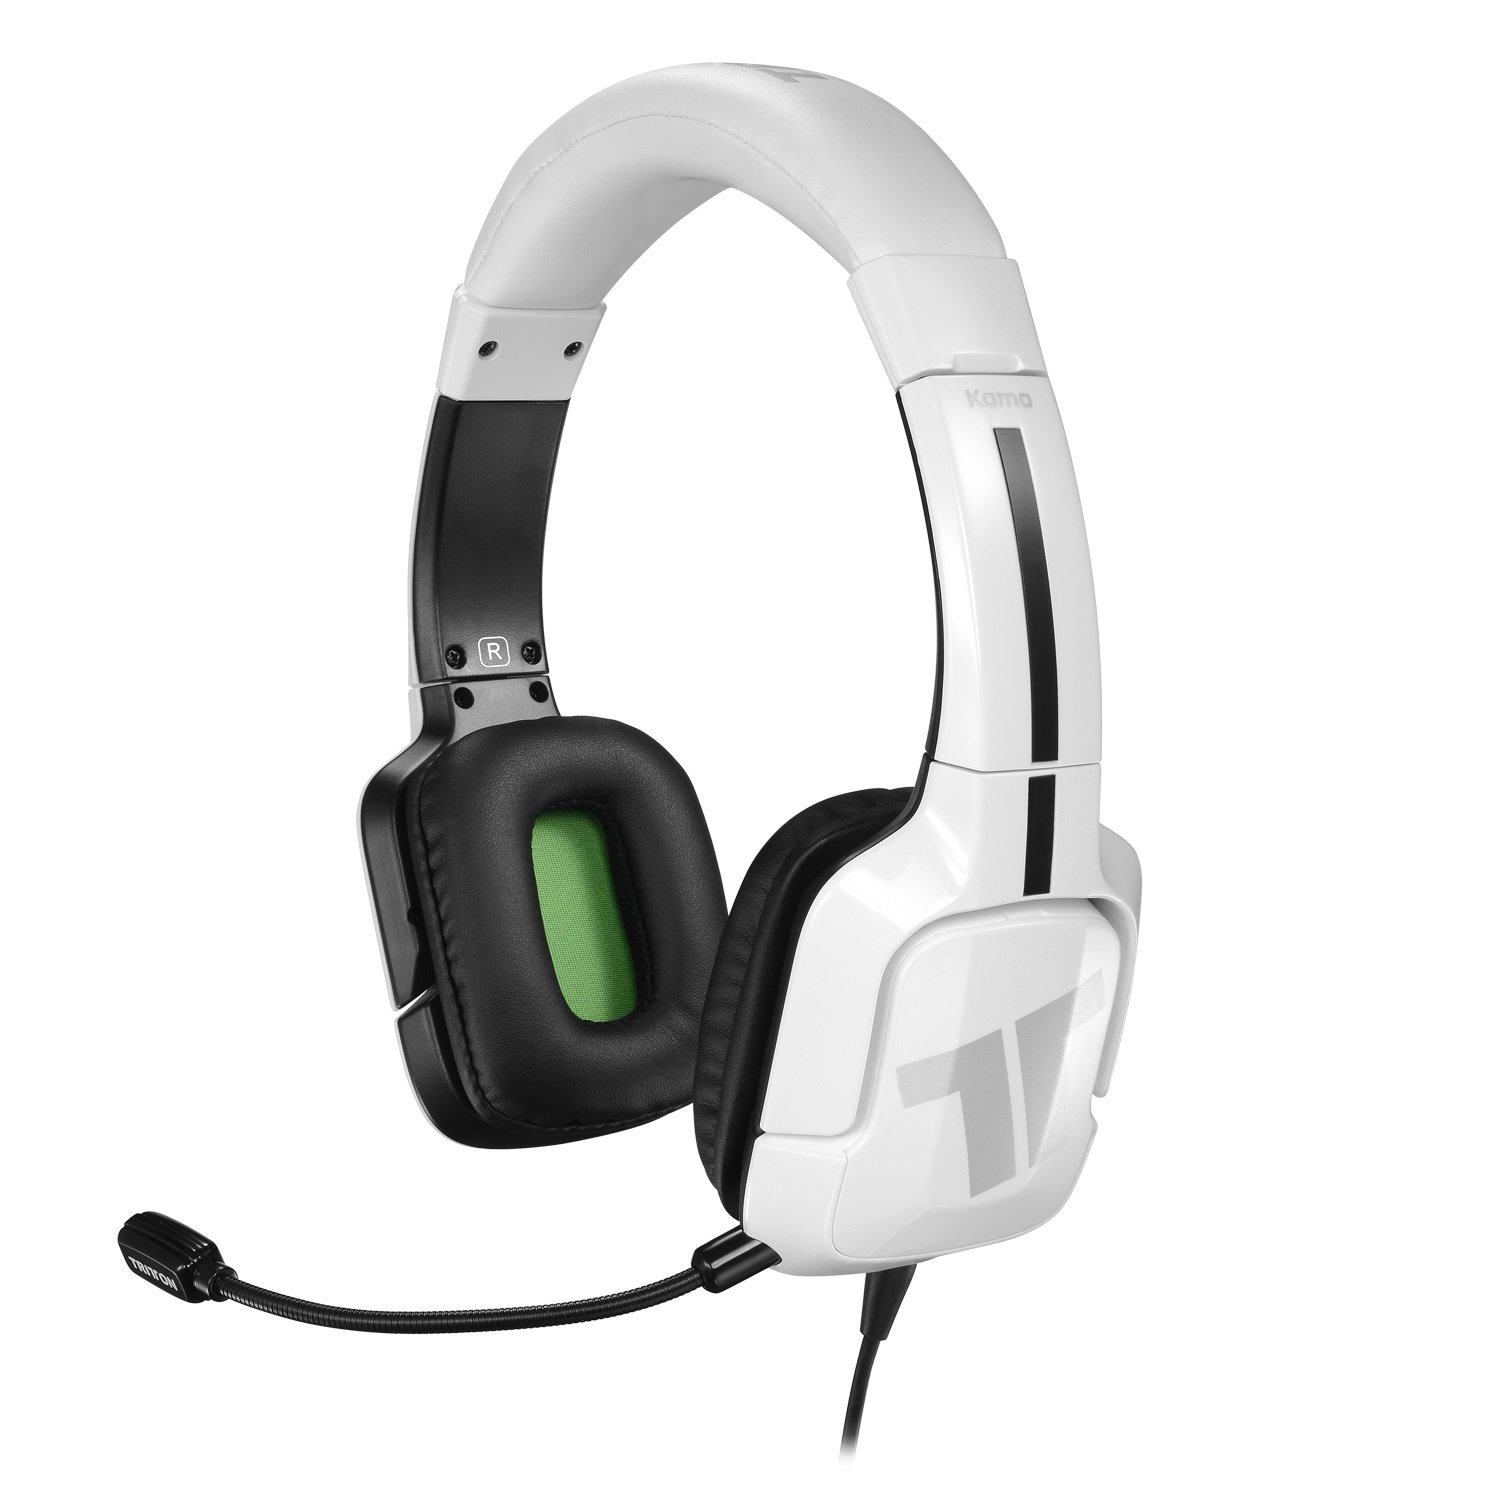 TRITTON Kama Stereo Headset - White by Mad Catz